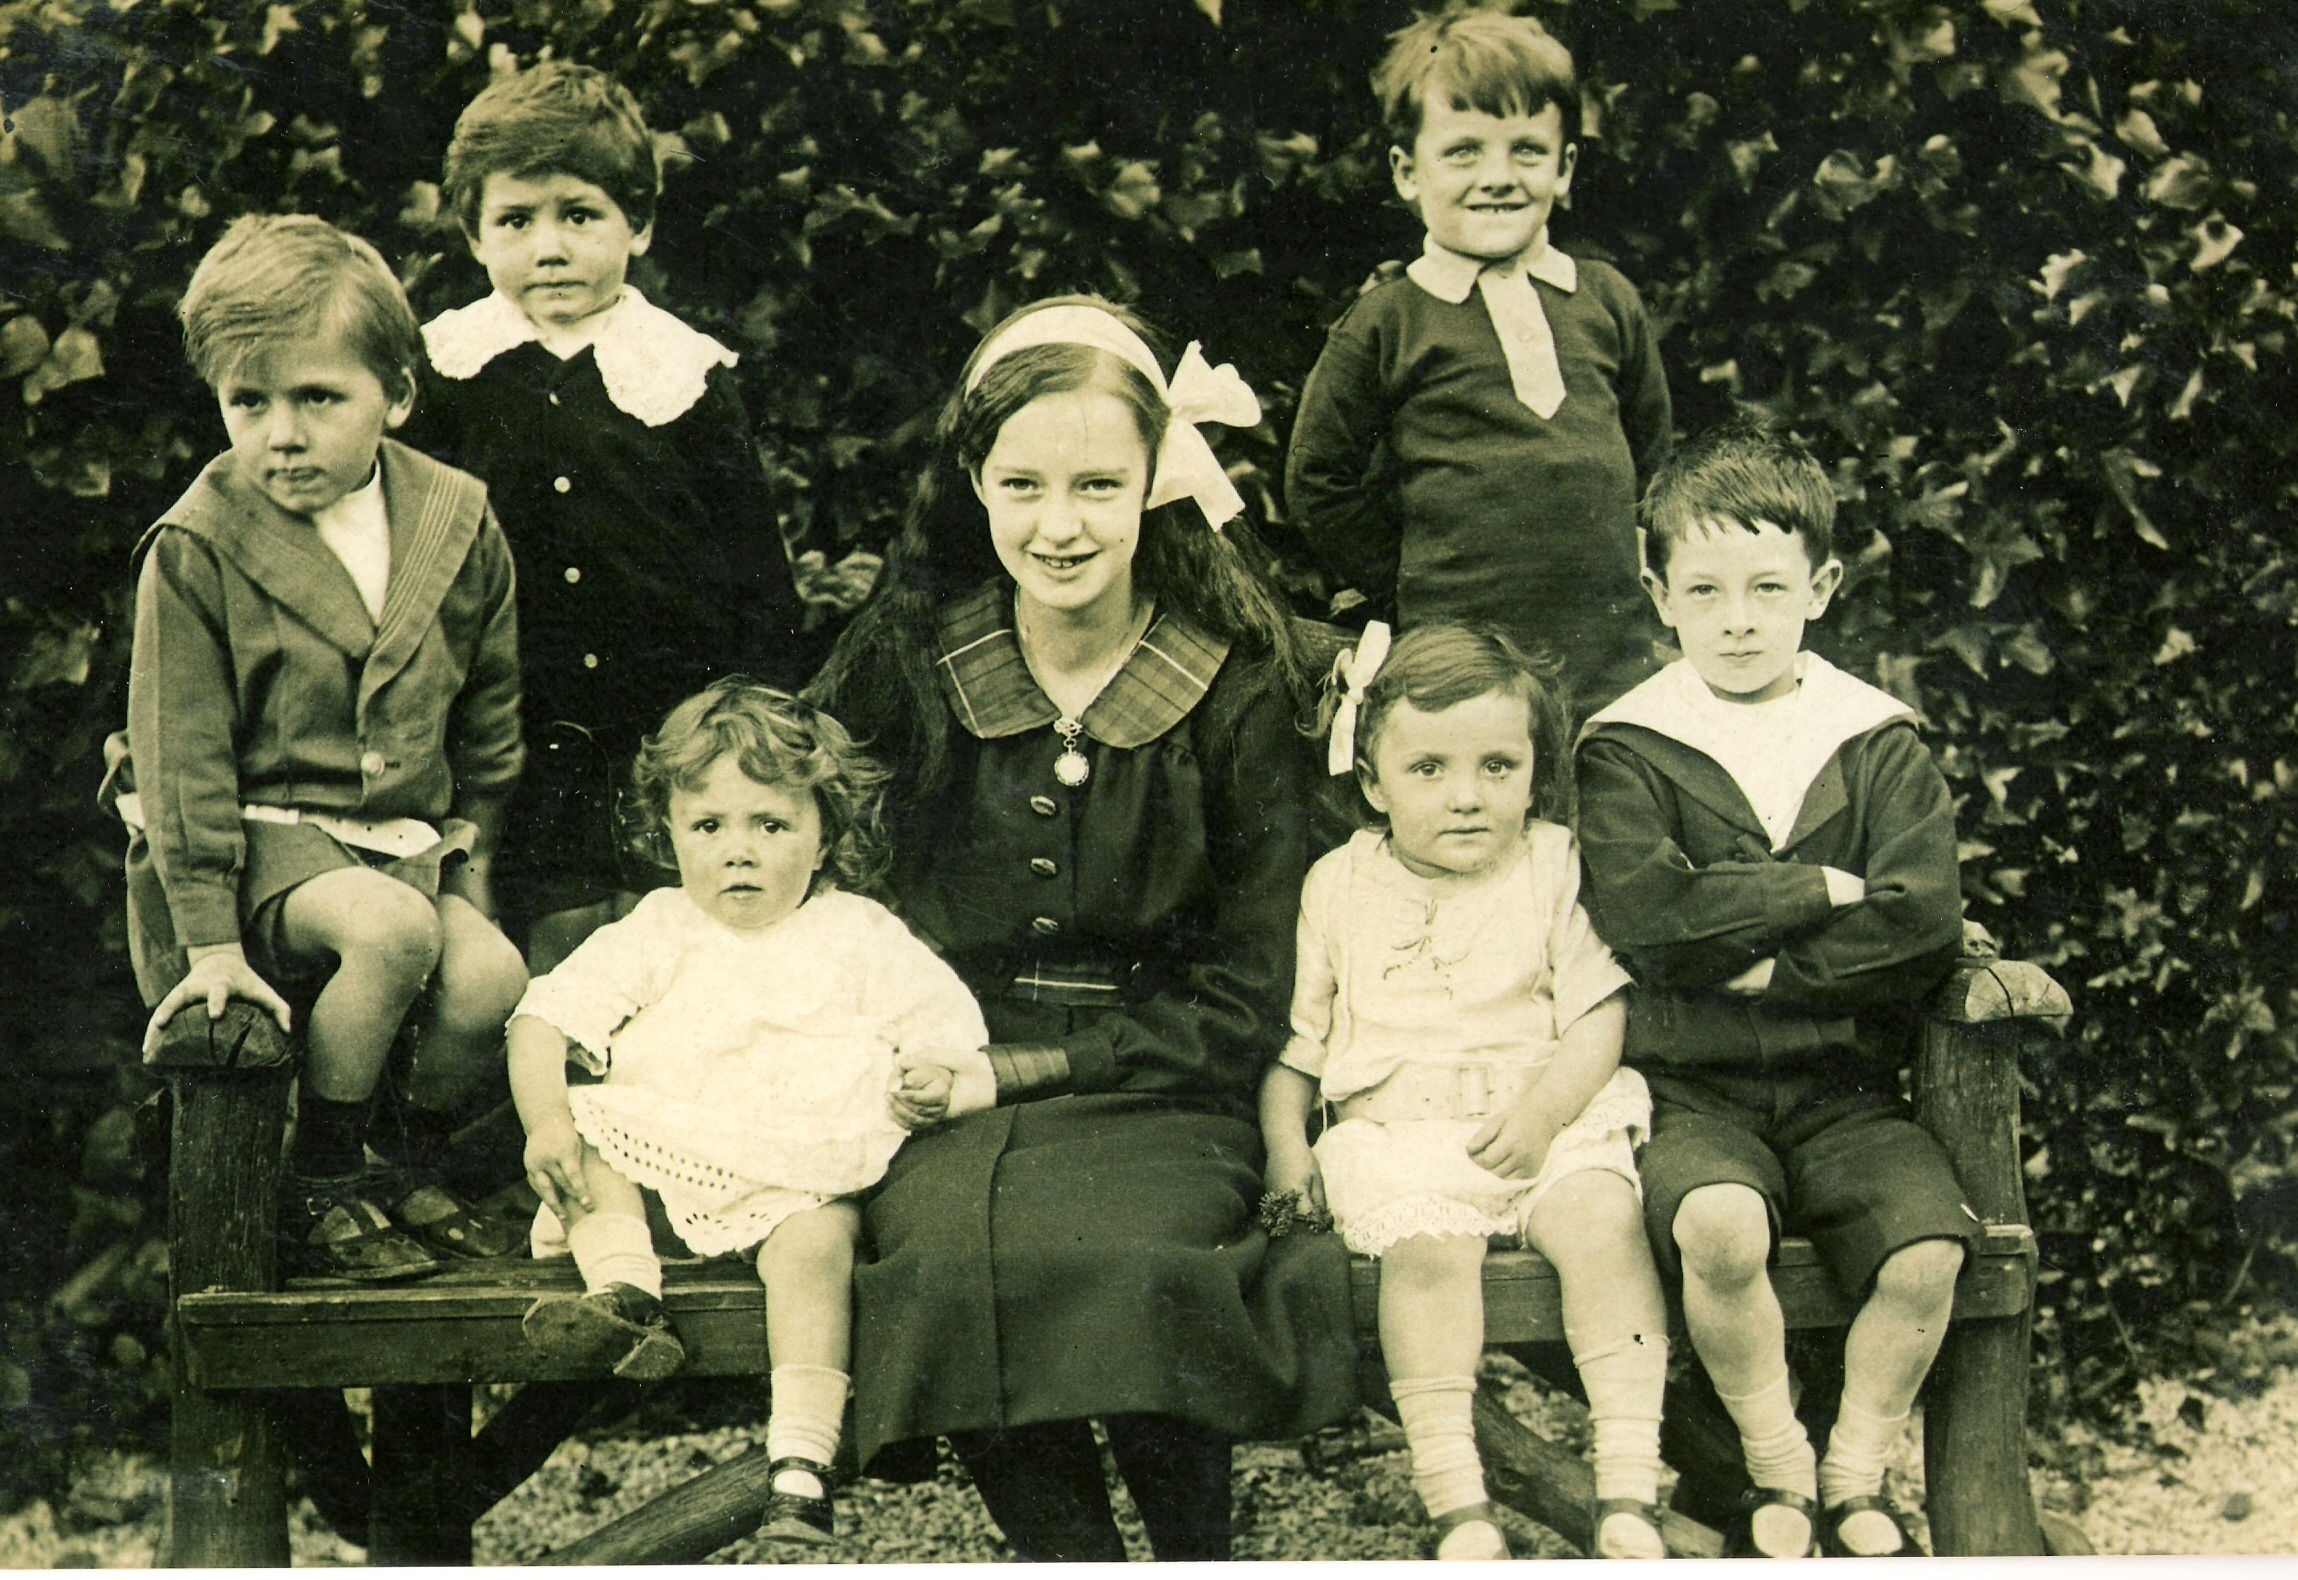 1916ish x,x,x, Connie, Mollie, John, x